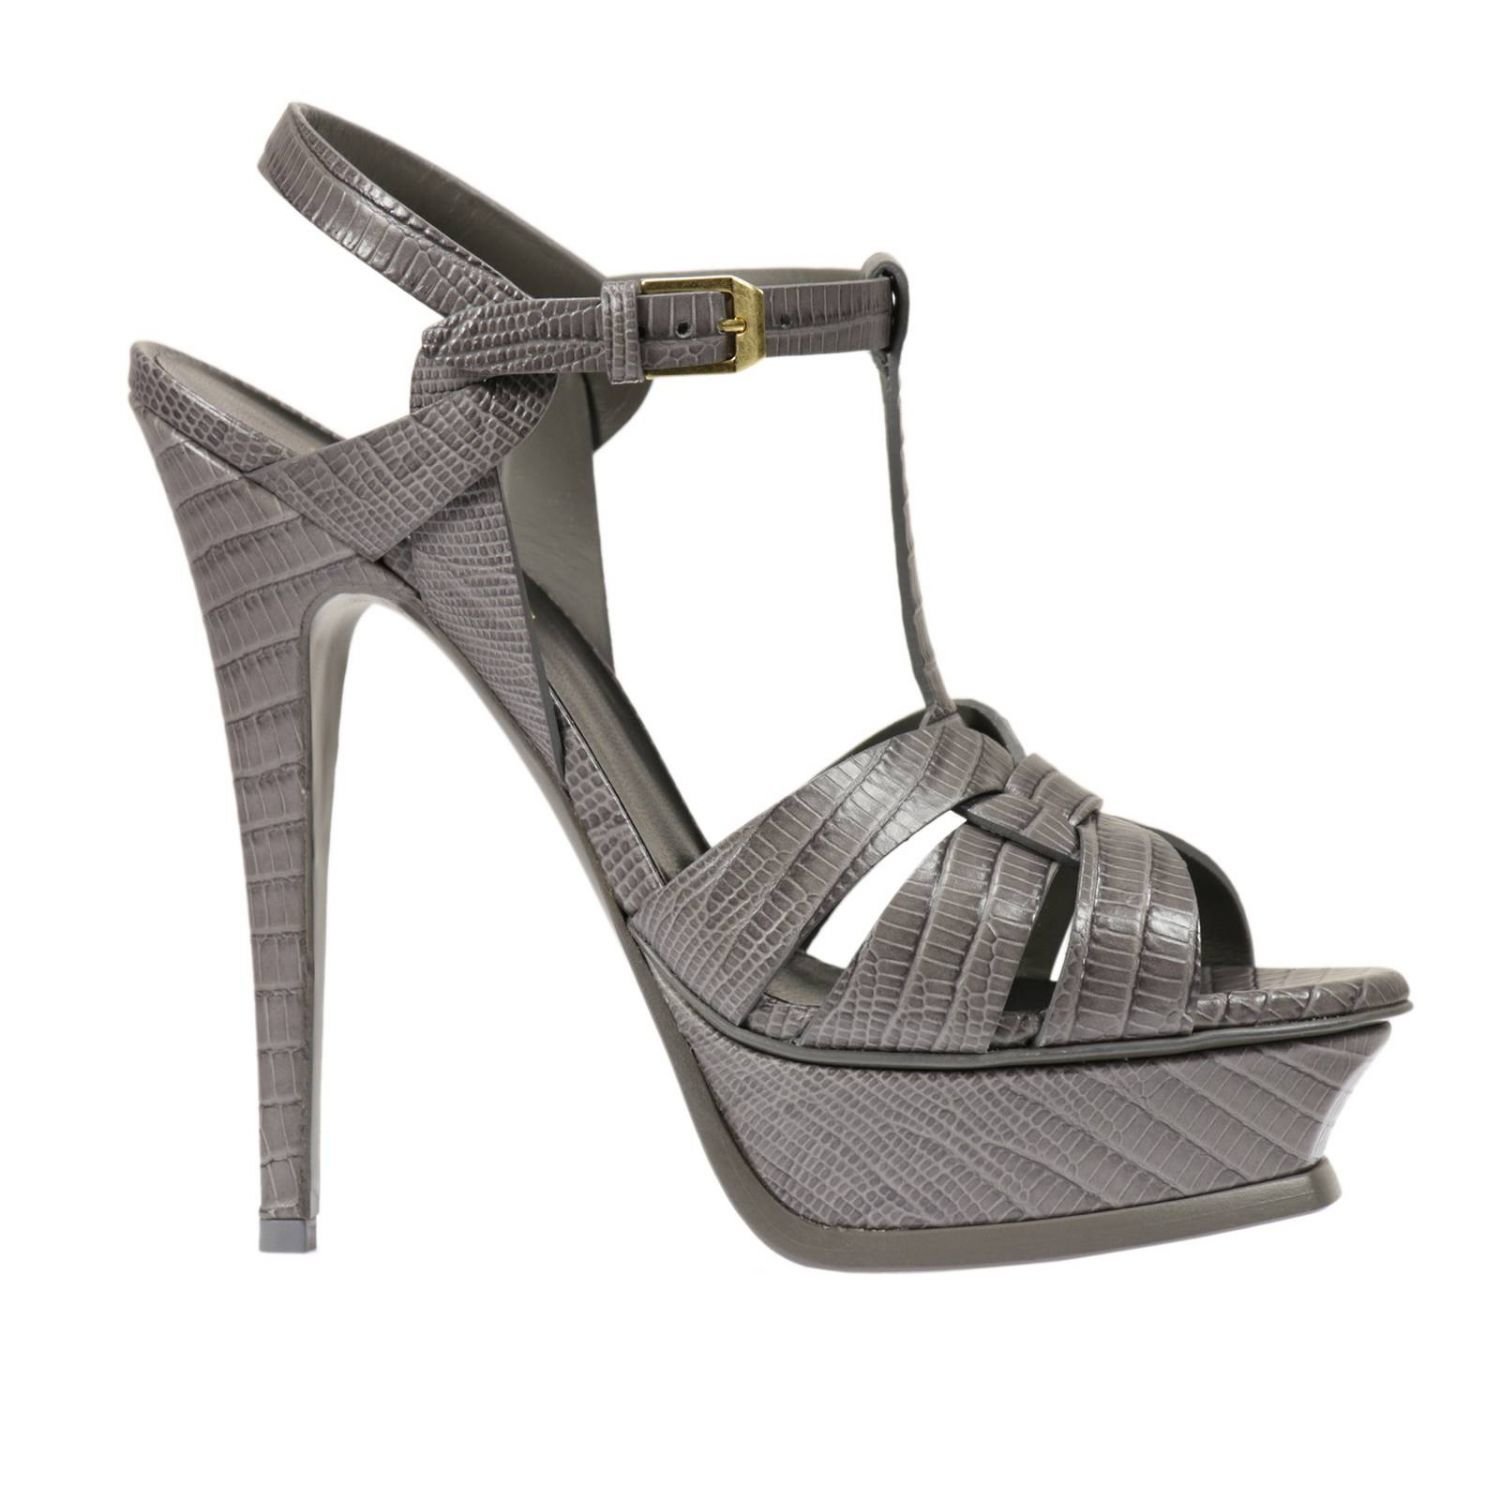 a3c71df40e1 Saint Laurent Sandal Heels